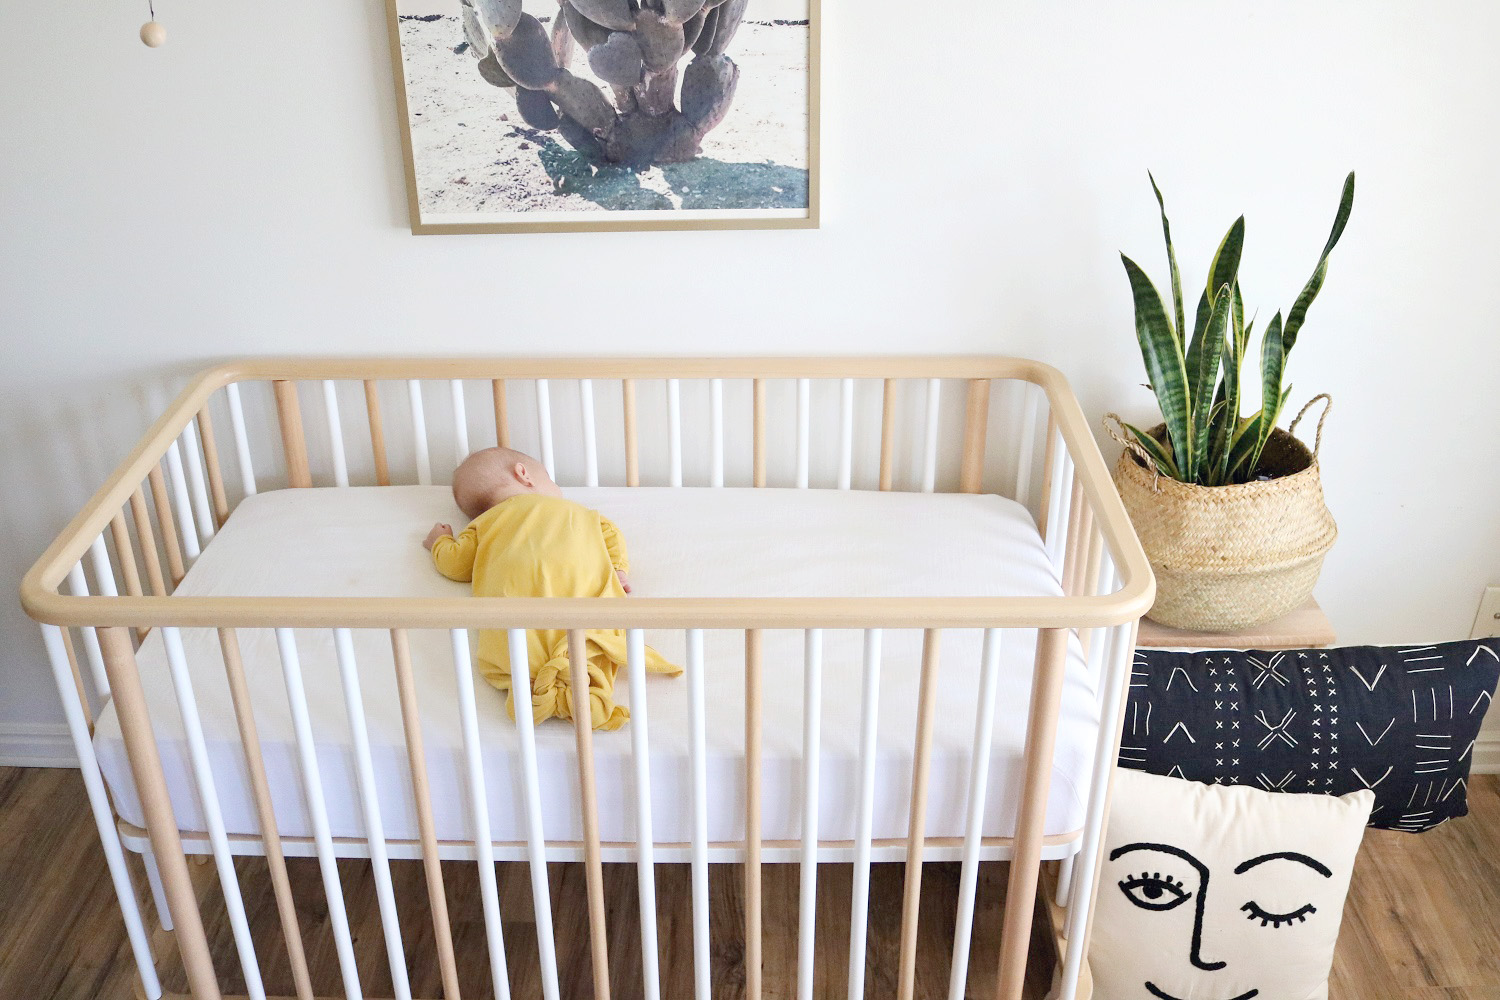 Baby bed next to bed - Life Crib Micunausa